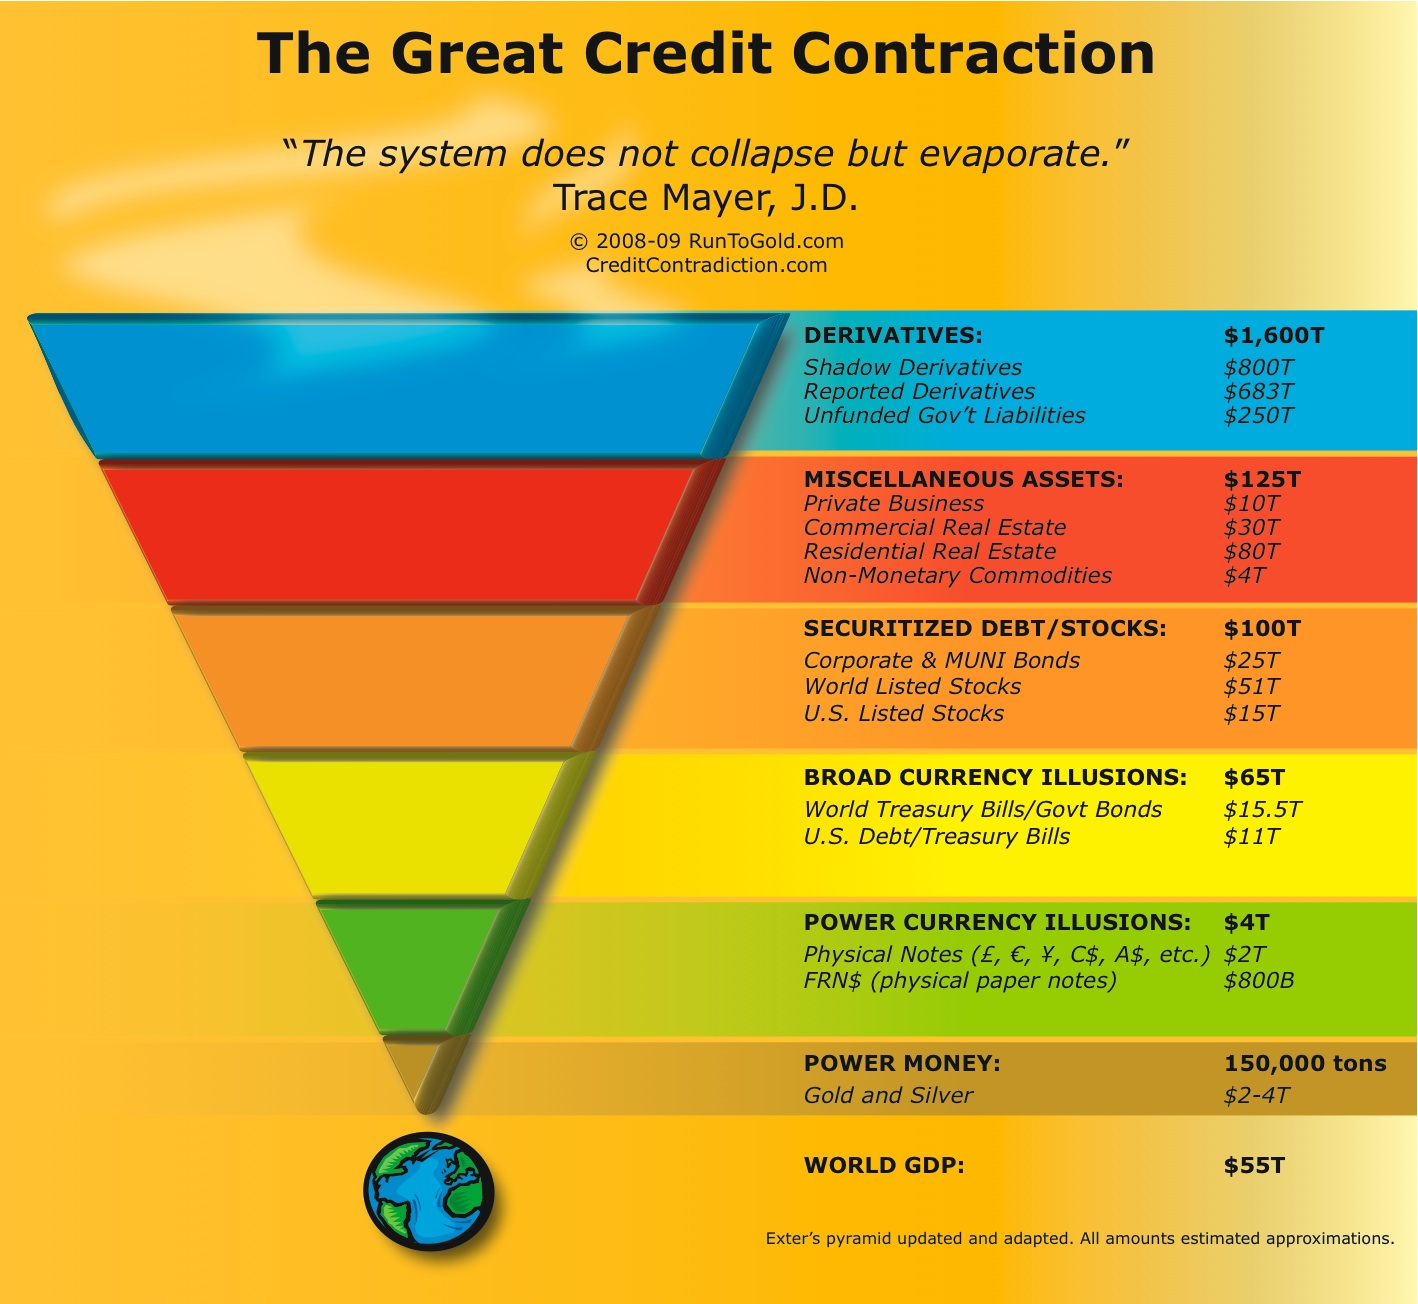 https://i2.wp.com/www.creditcontraction.com/images/affiliate/Great-Credit-Contraction-Liquidity-Pyramid-Large.jpg